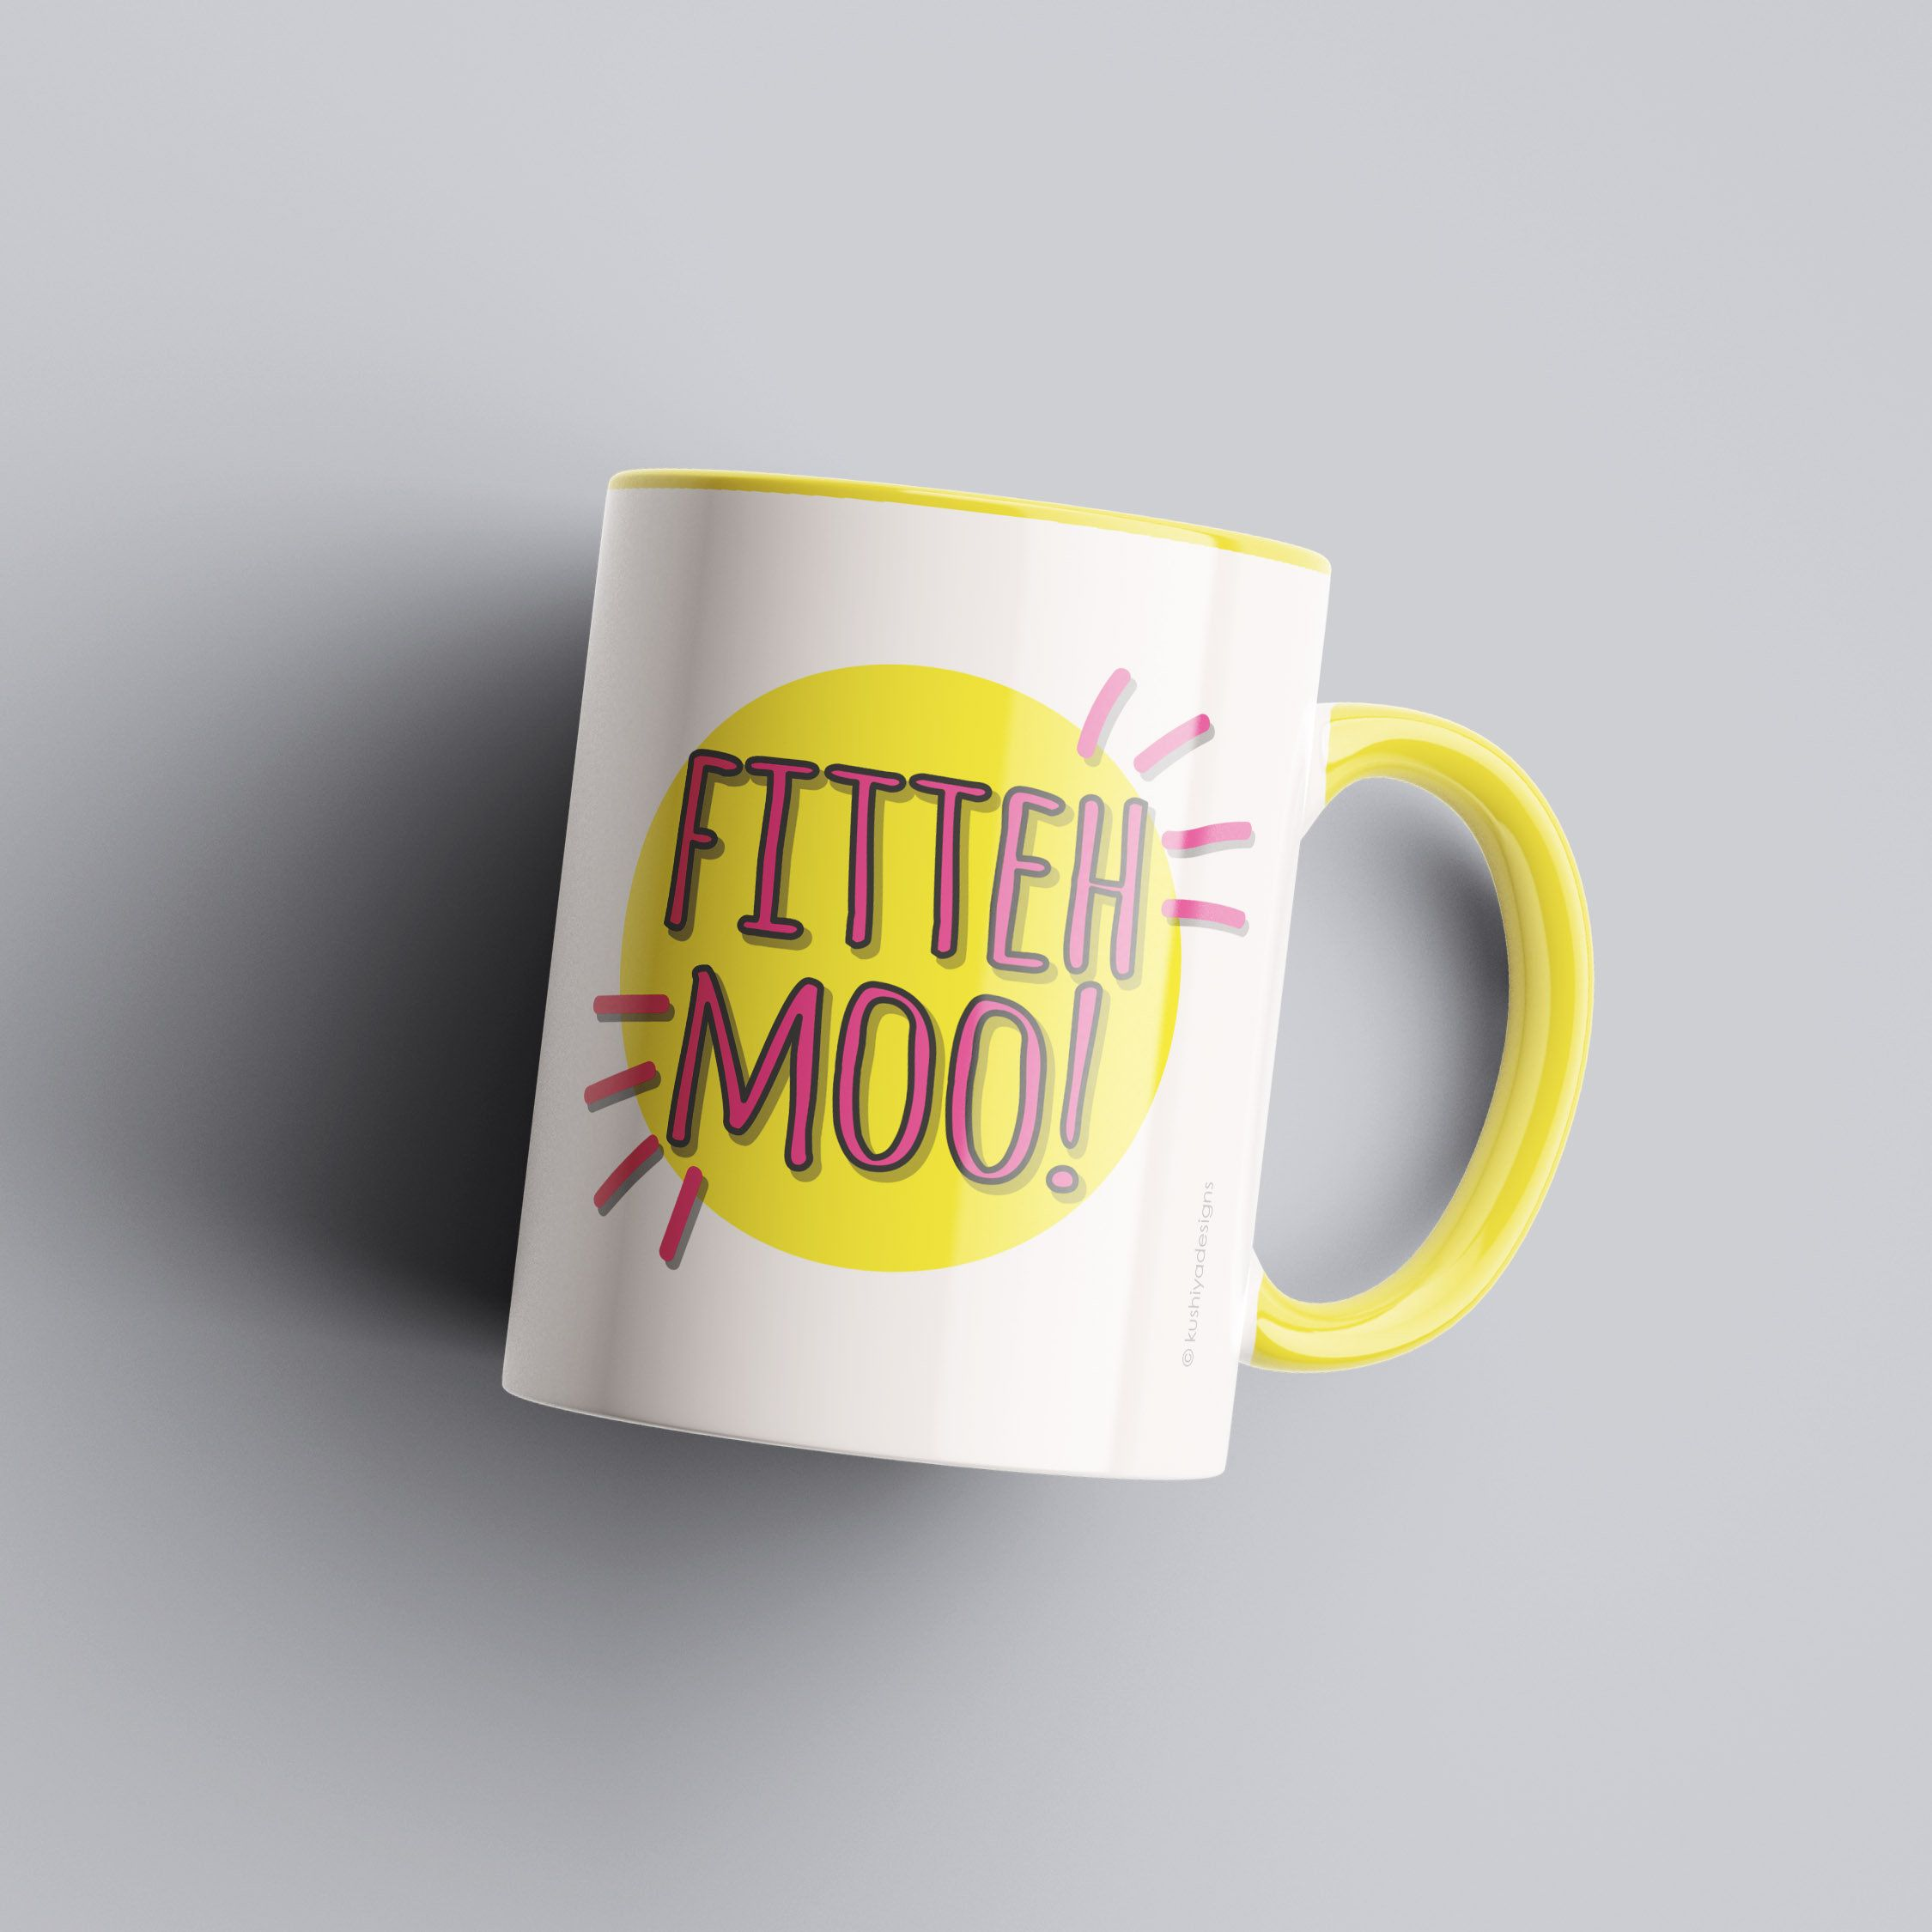 Fitteh moo mug gift idea for friend colleague brother